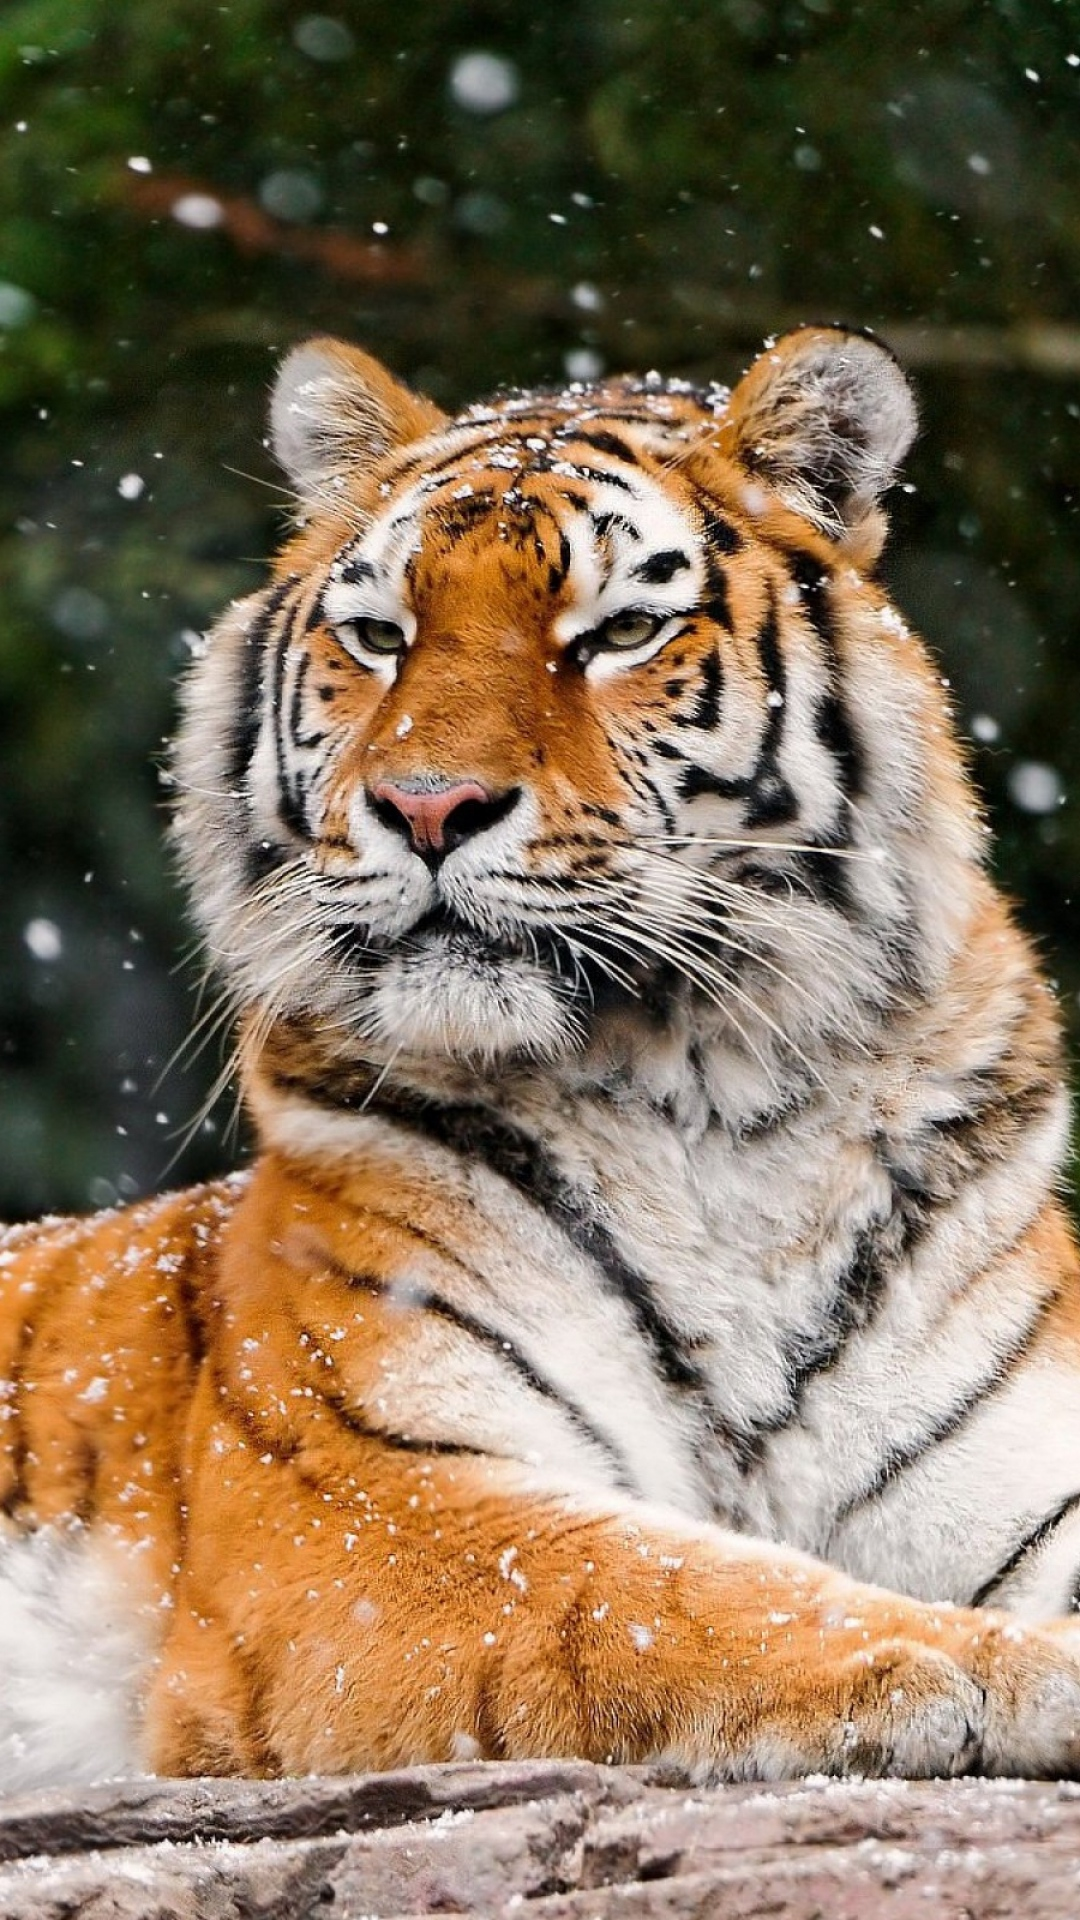 Htc One M8 Wallpaper Hd Snow Tiger Best Htc One Wallpapers Free And Easy To